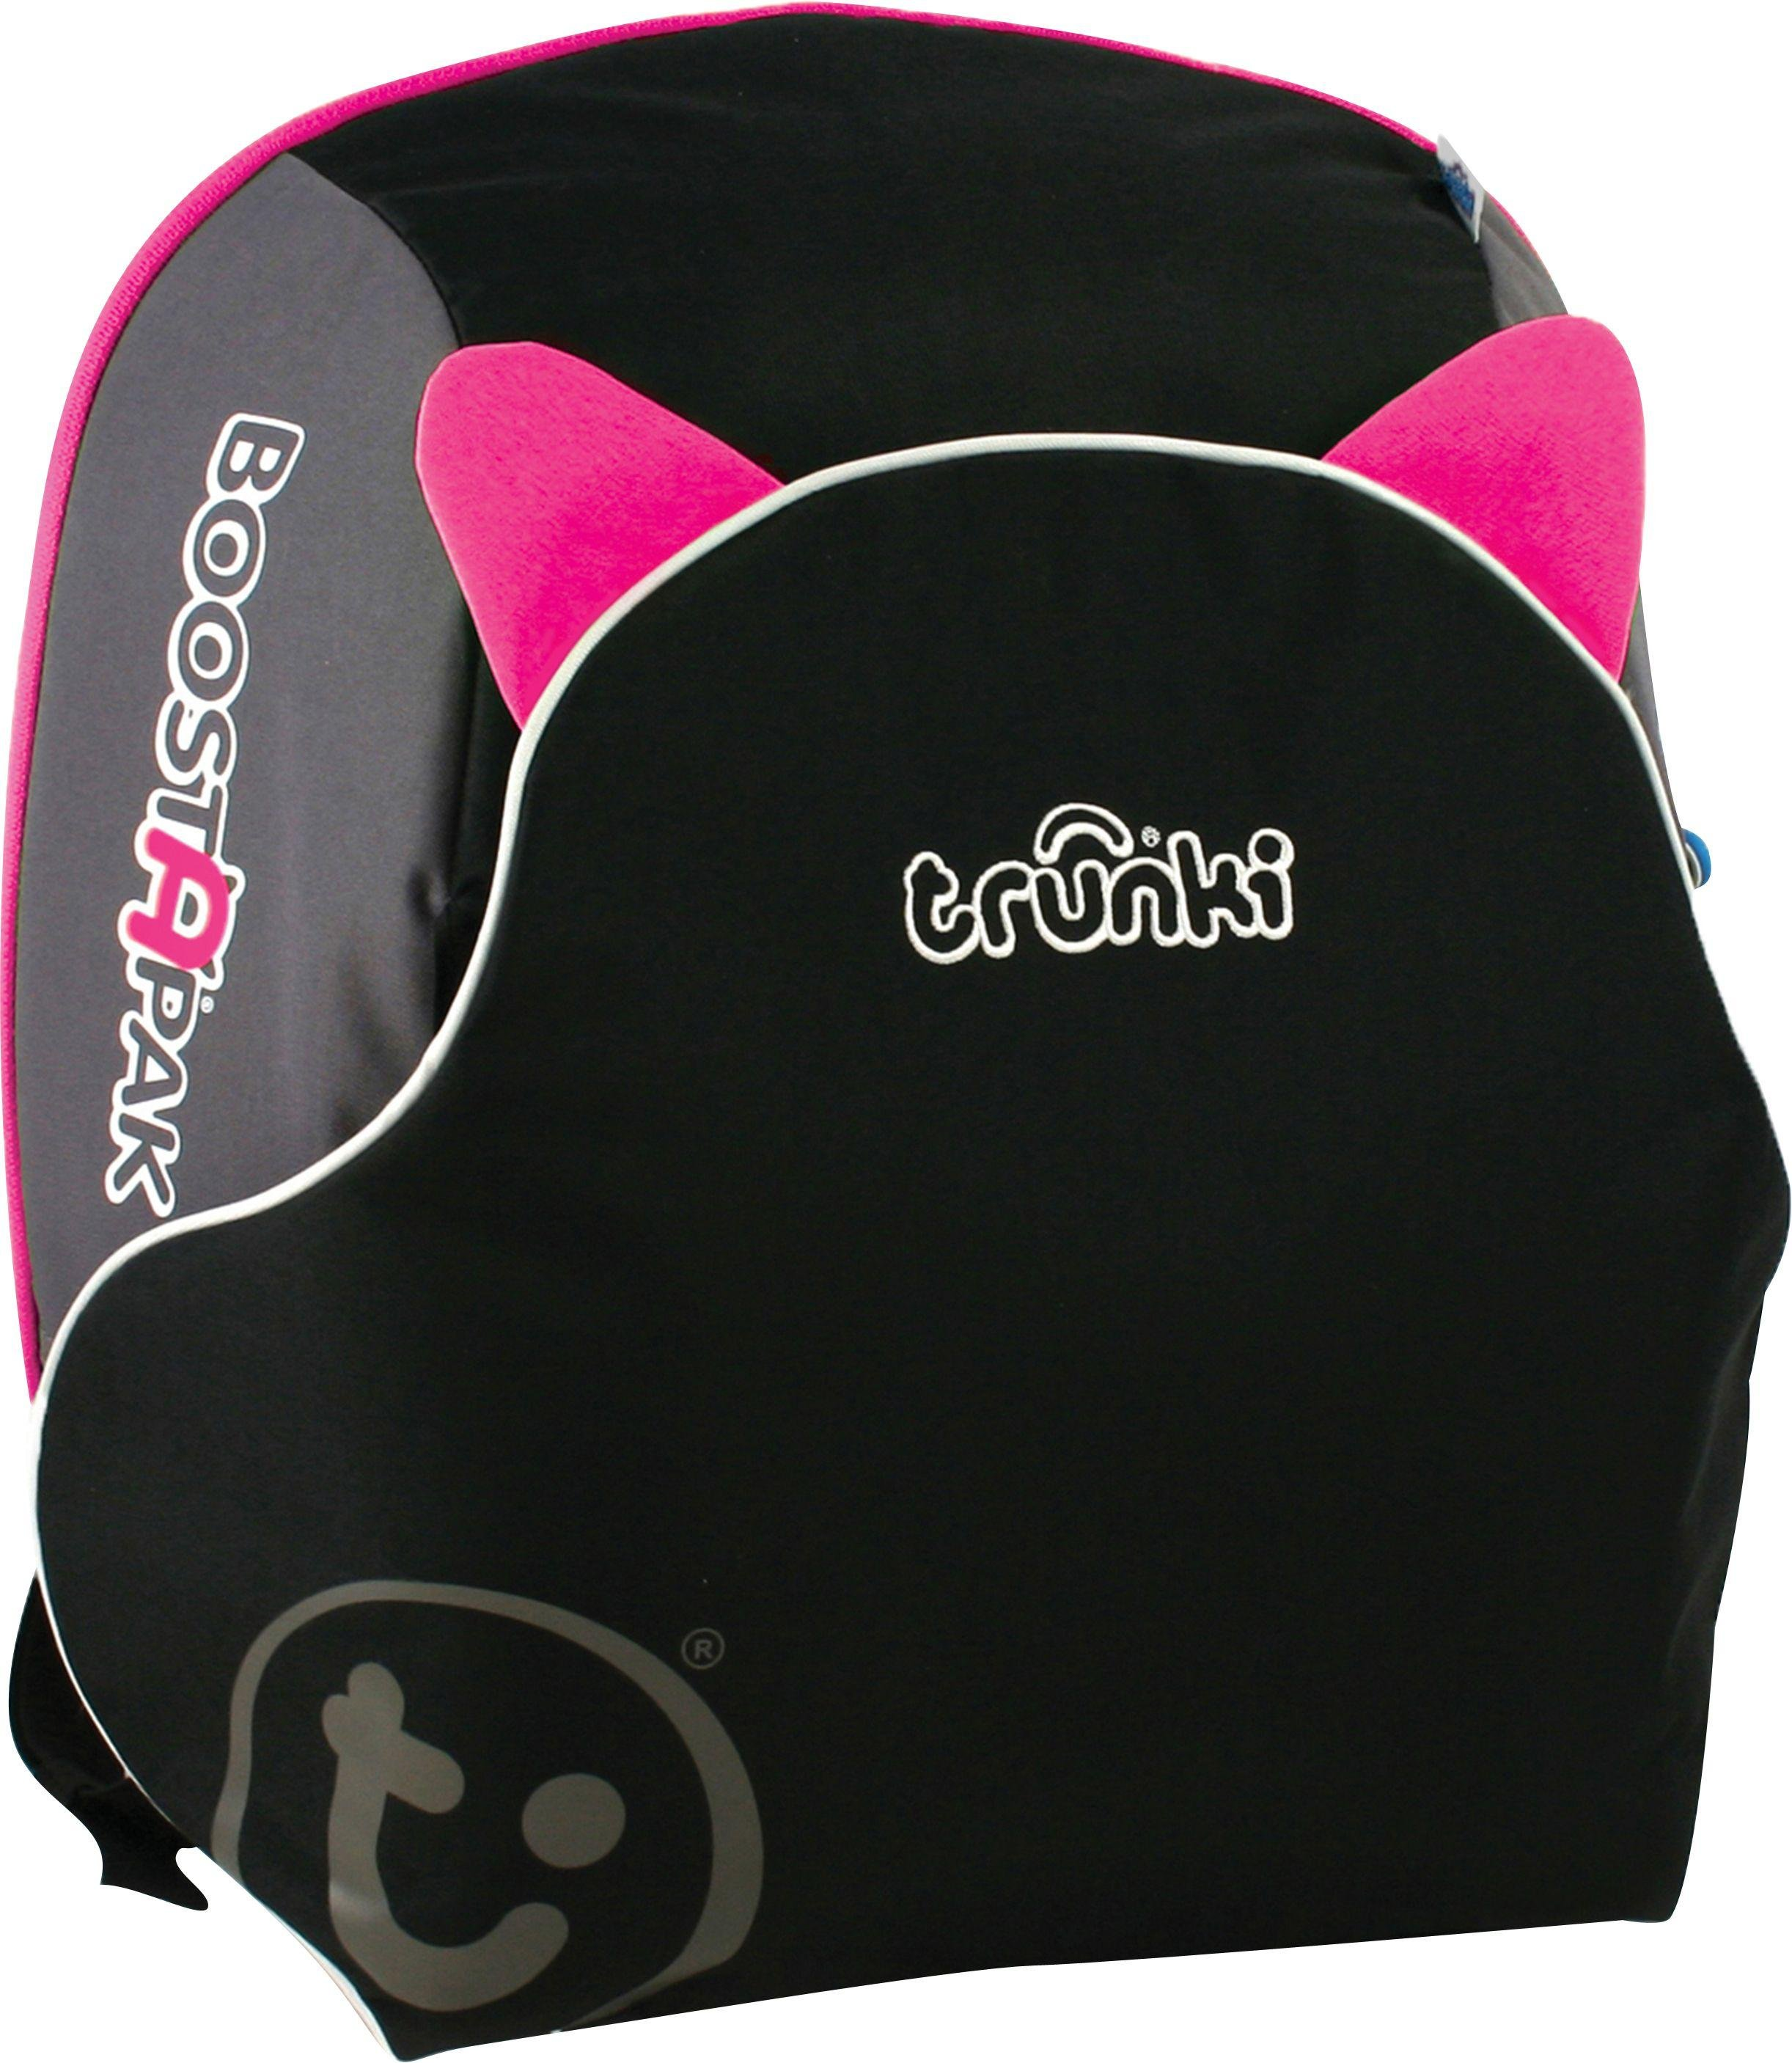 Trunki Boostapak Car Booster Seat - Pink